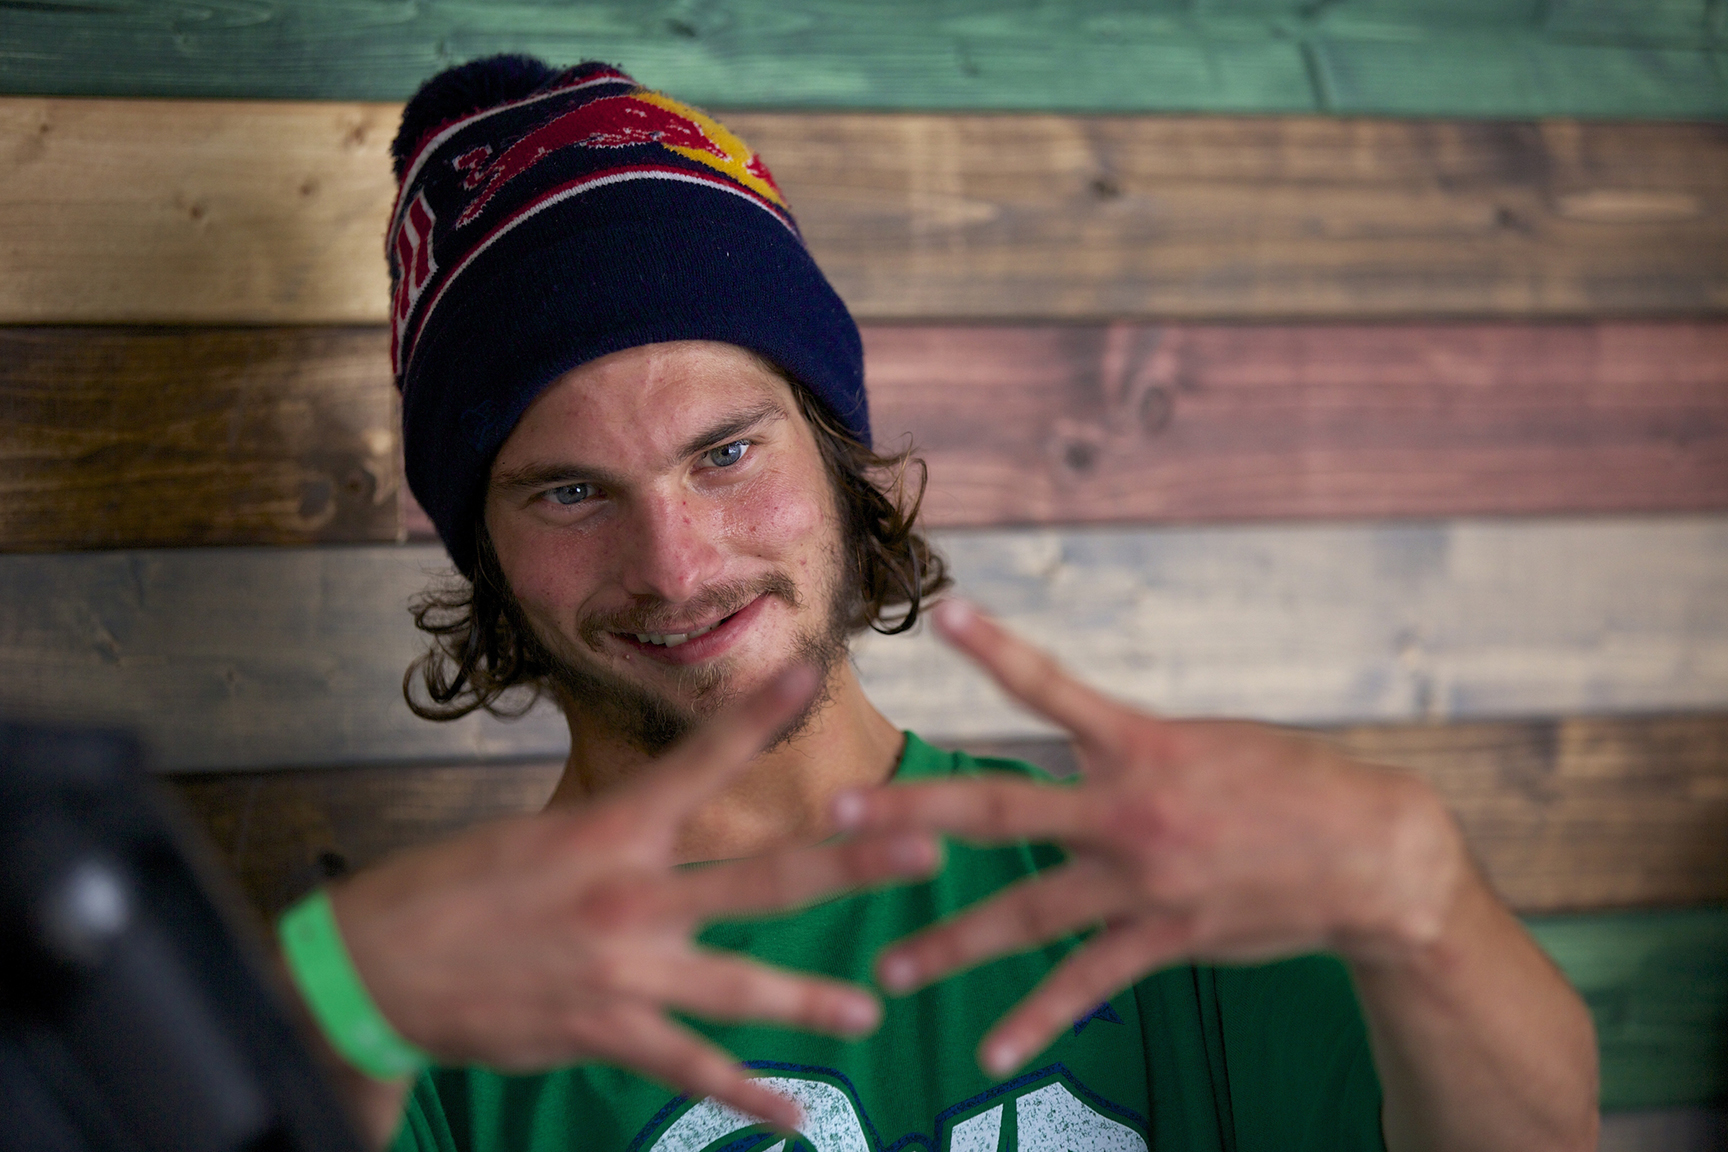 7. Torey Pudwill